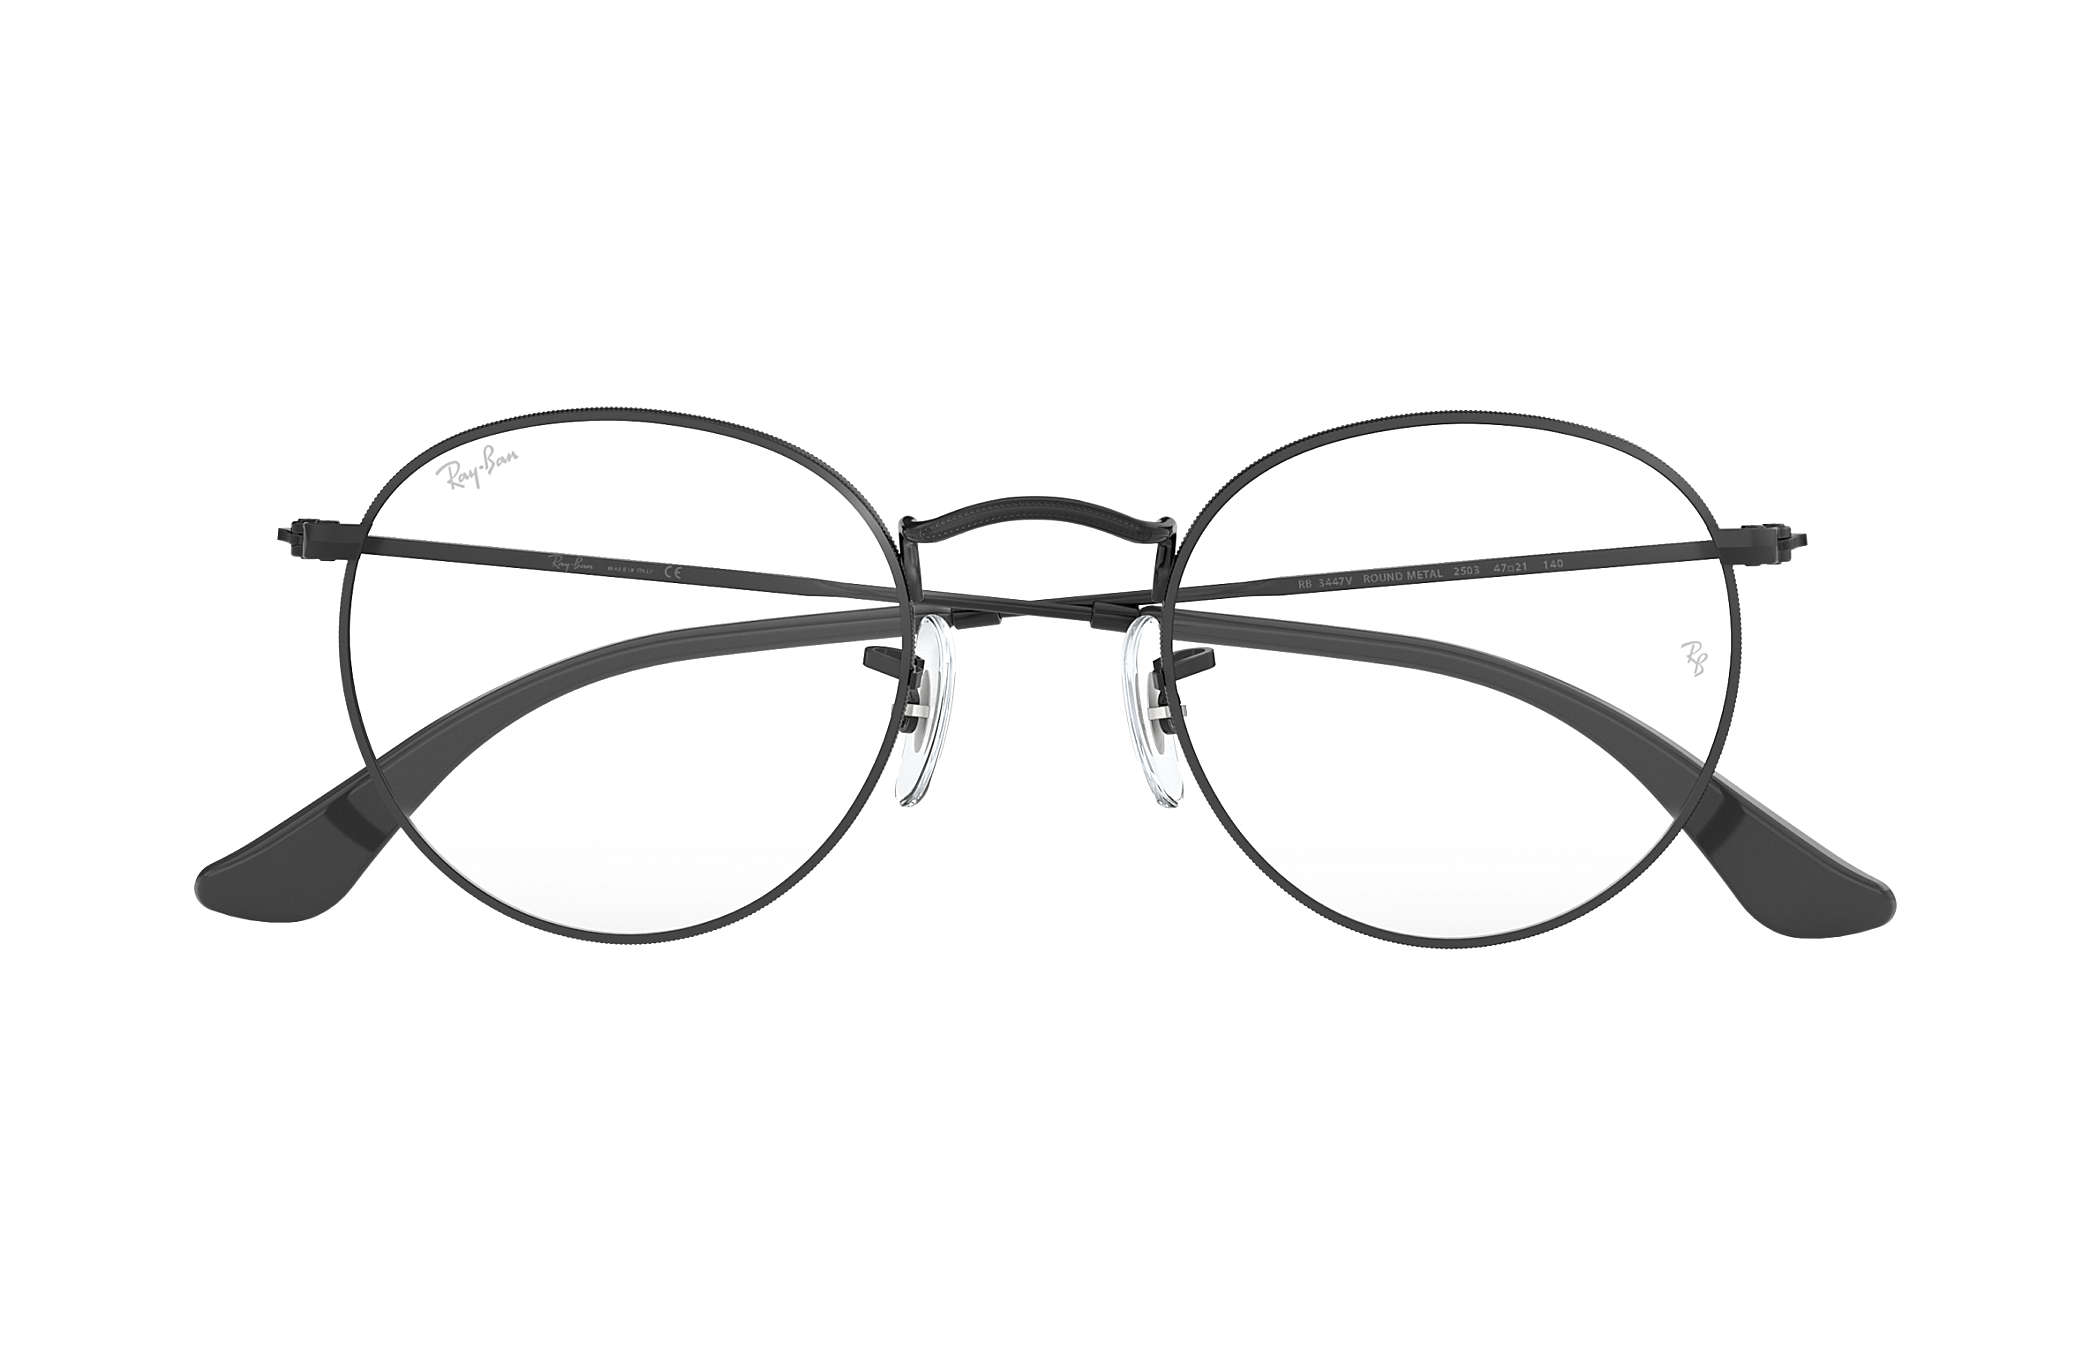 d6669083b02 Ray-Ban eyeglasses Round Metal Optics RB3447V Black - Metal ...